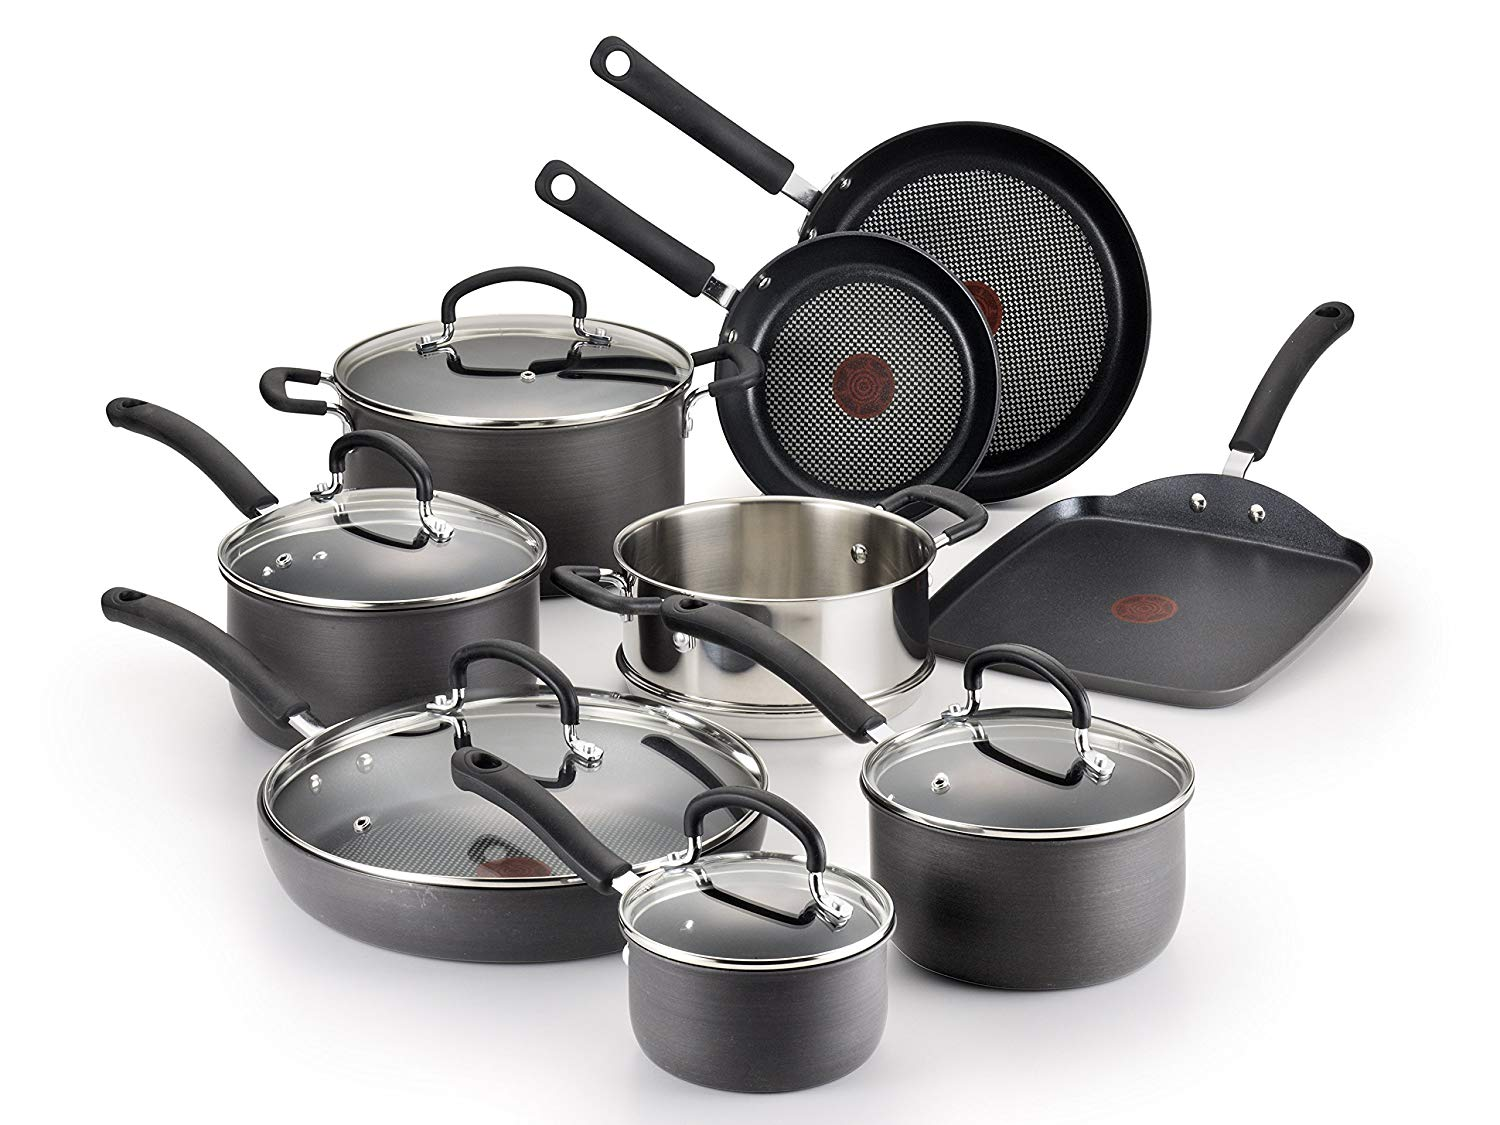 T-fal Hard Anodized Cookware Set, Nonstick Pots and Pans Set, 14 Piece, Thermo-Spot Heat Indicator